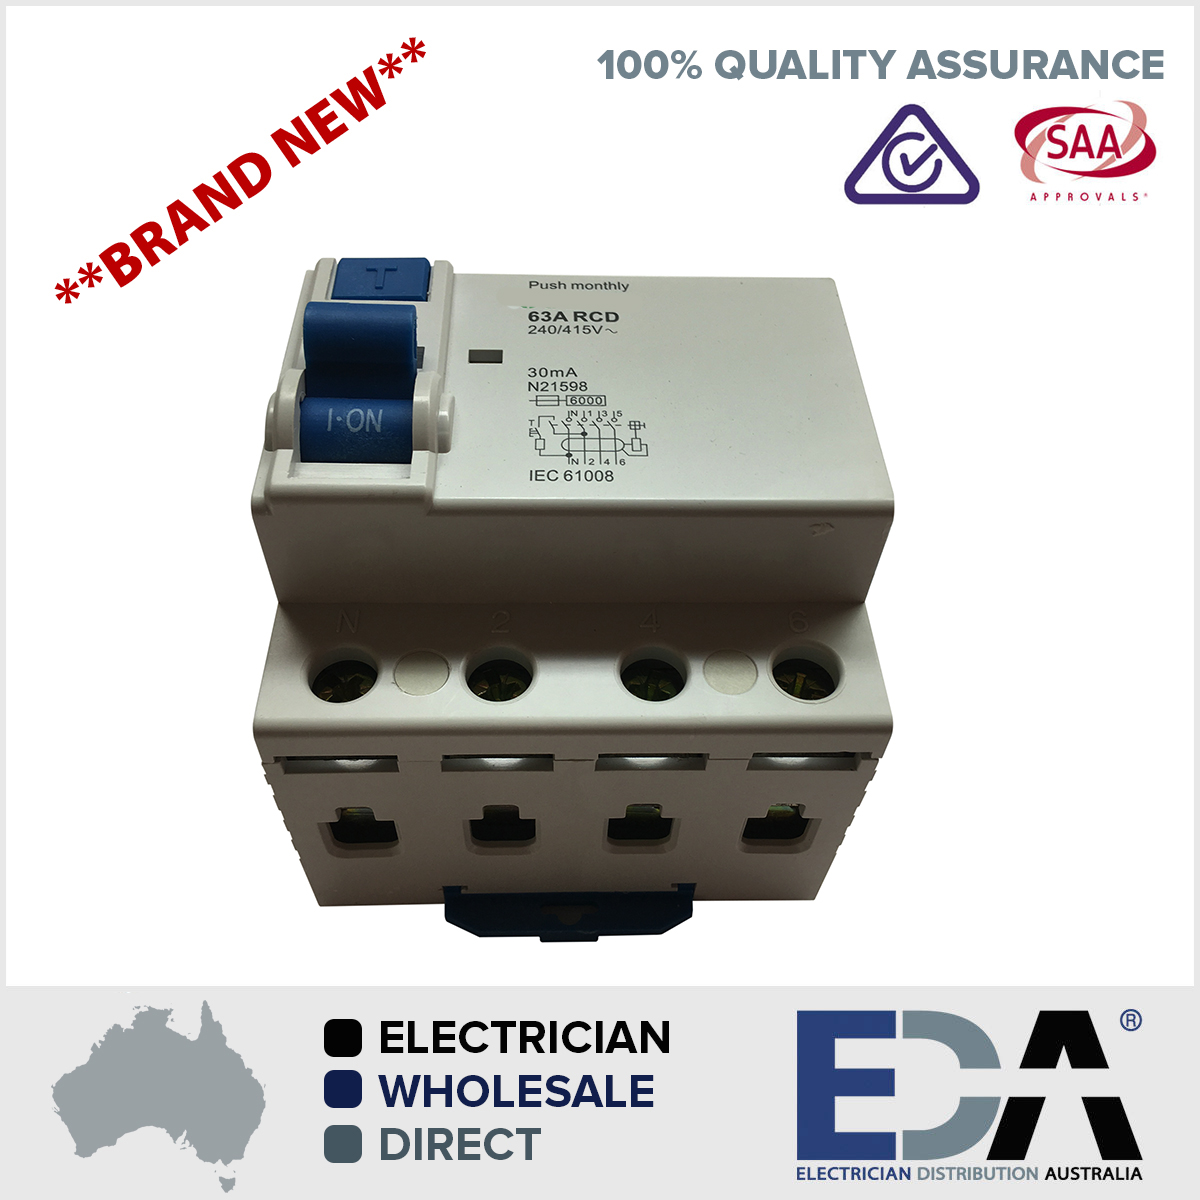 63 amp 4 pole rcd 240415v residual current device safety switch 63 amp 4 pole rcd 240415v residual current device safety switch switchboard eda online publicscrutiny Gallery